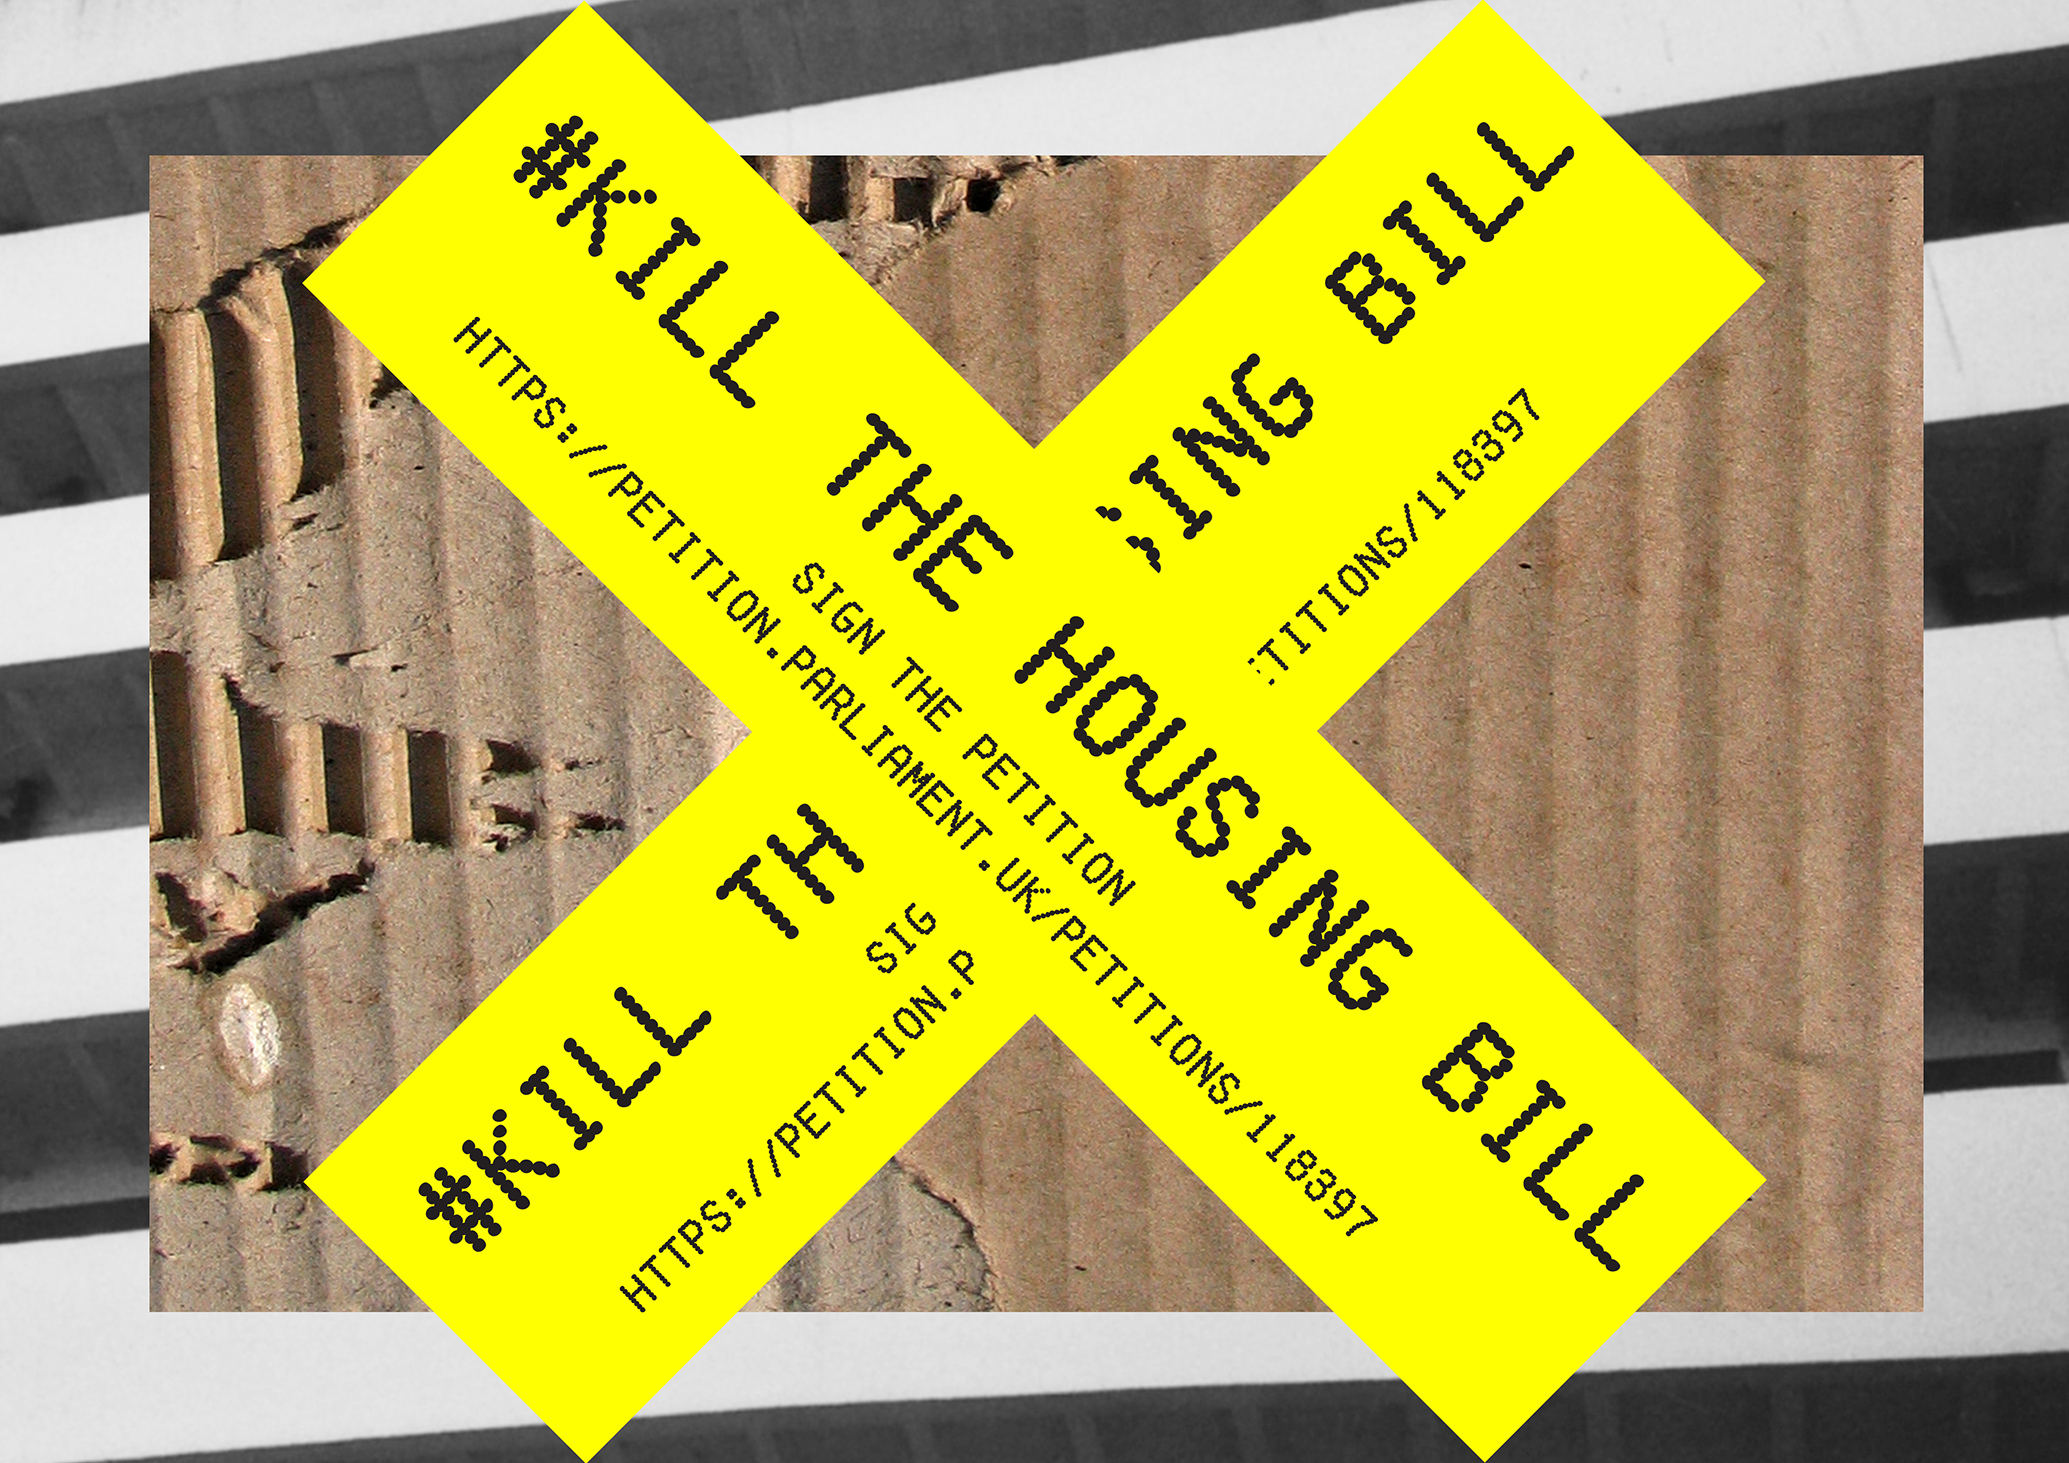 KILLTHEHOUSINGBILSNUFFCREATIVE2016-yellow-LR.jpg